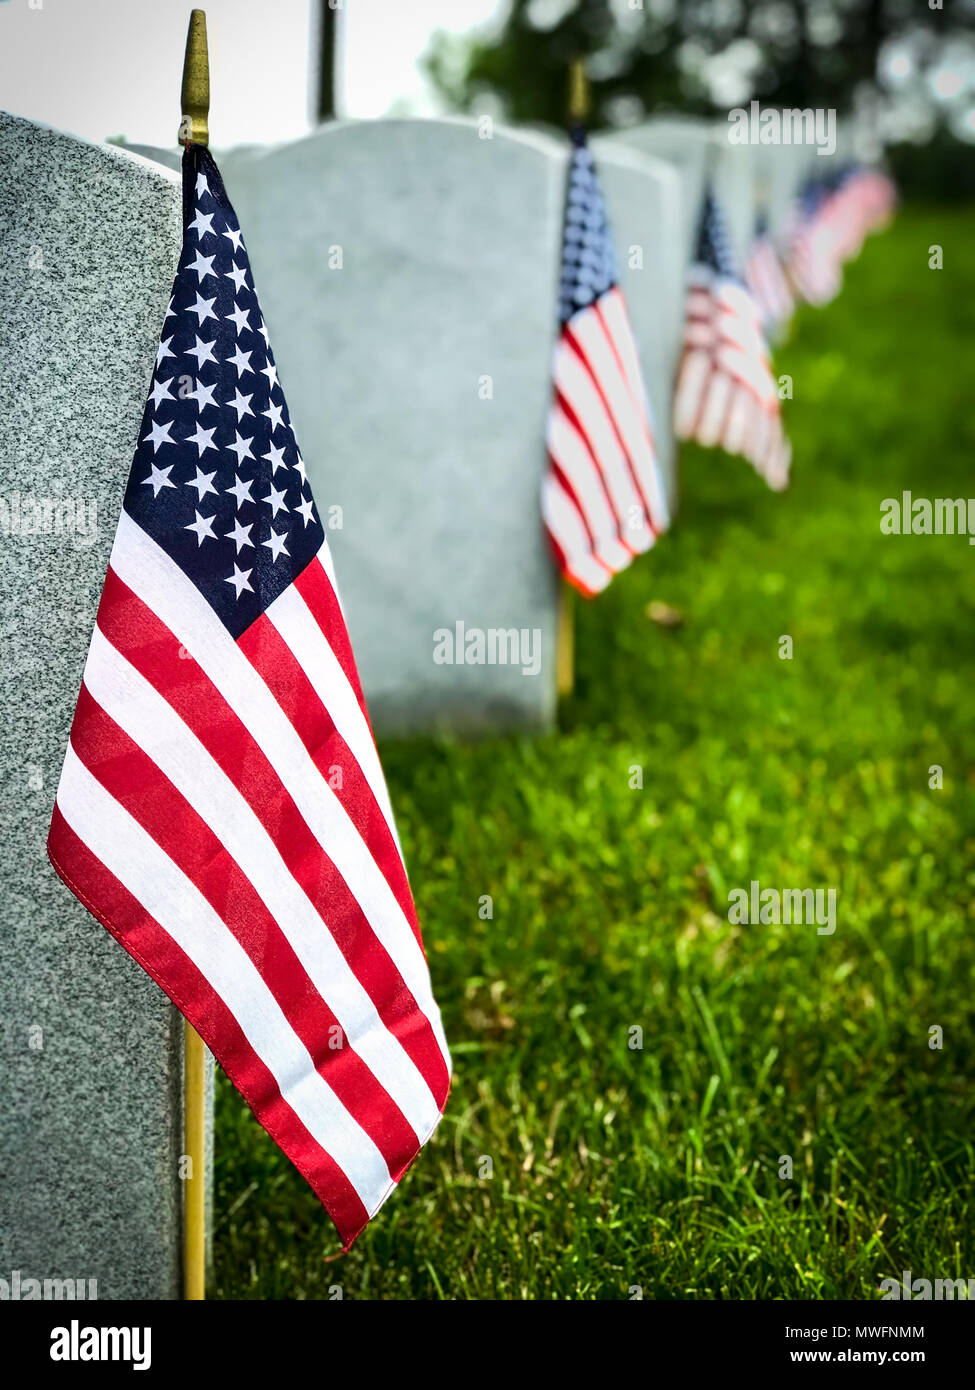 Decorated graves of US military service members at a Virginia cemetery. Stock Photo